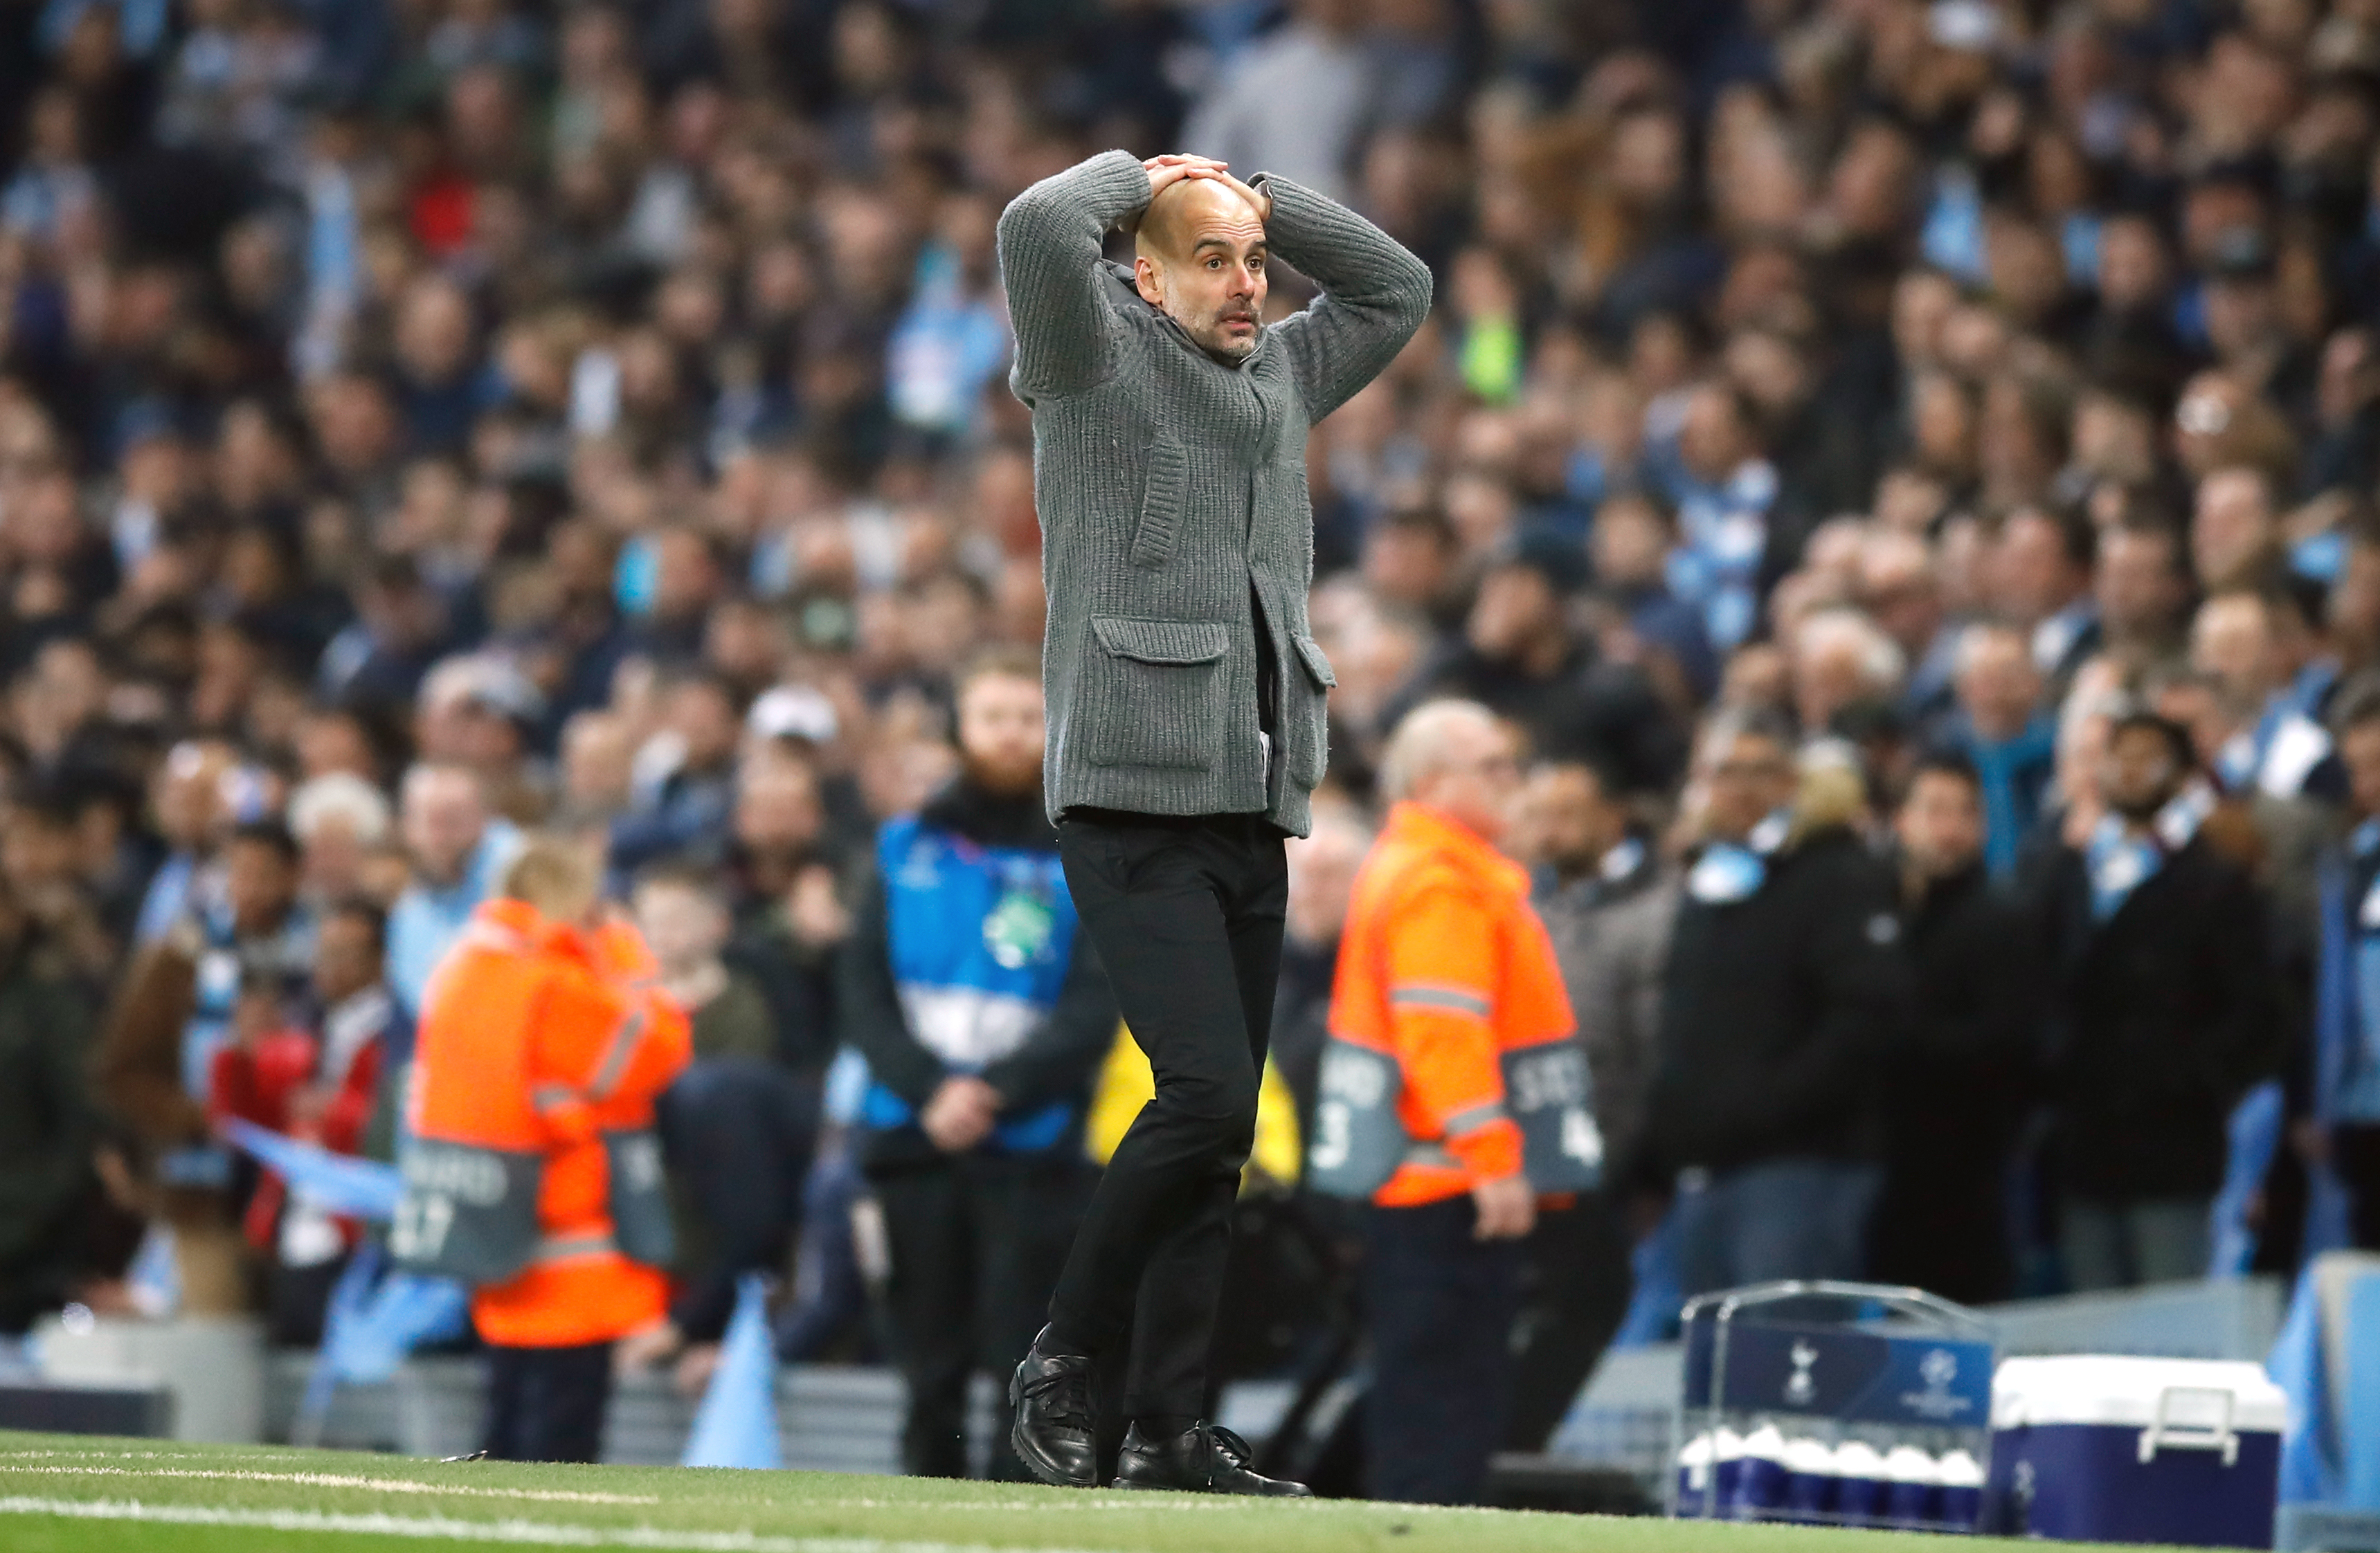 Guardiola wouldn't be able to believe his side had been banned. Image: PA Images